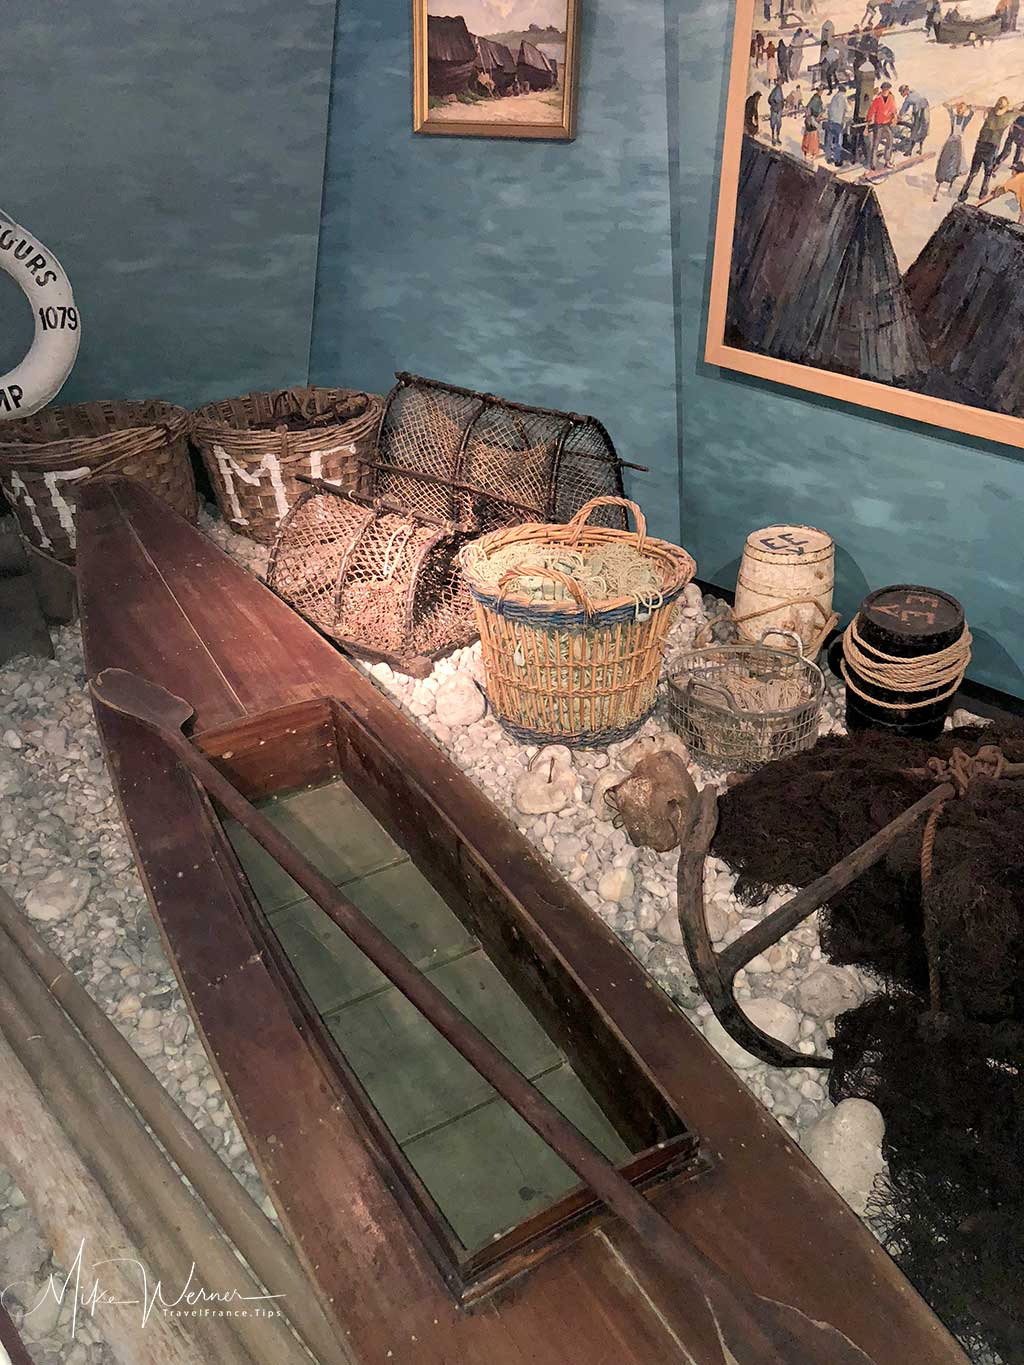 Inside the Fisheries Museum of Fecamp